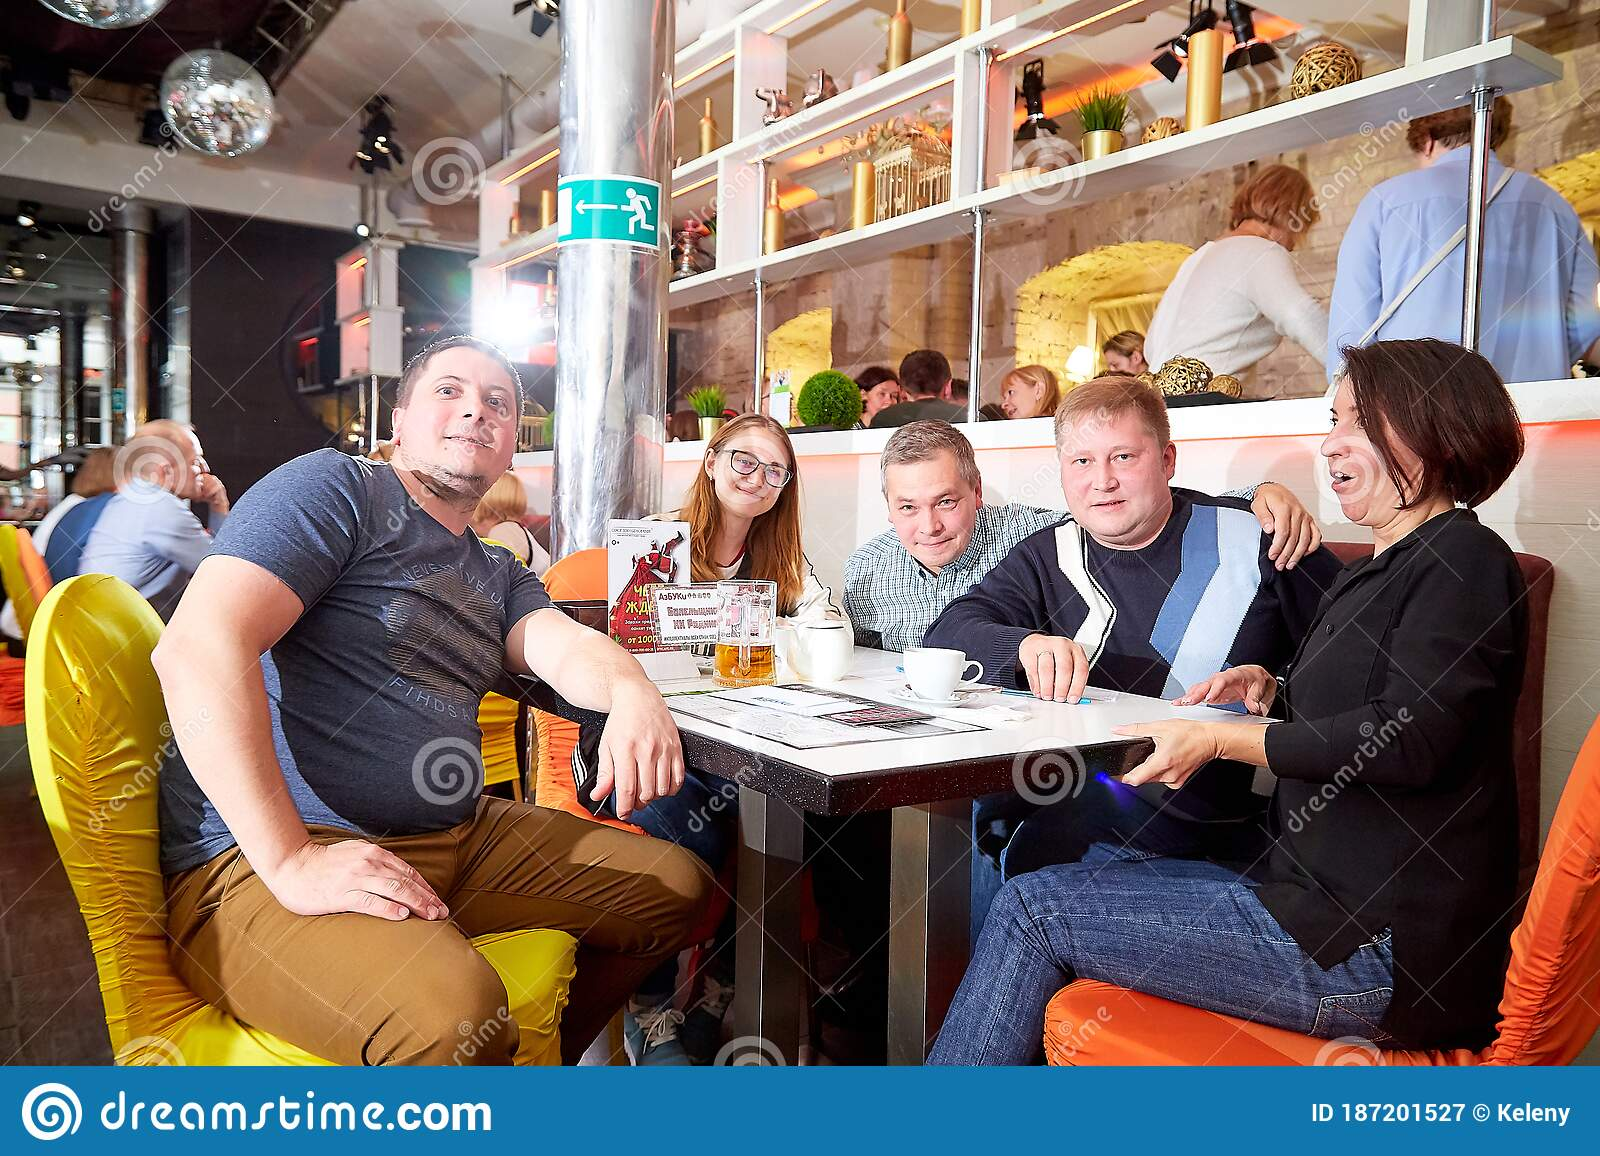 Kirov Russia October 02 2019 People At Tables In Cafe Or Restaurant Posing For Photographer During Intellectual Game In Which Editorial Photography Image Of Food Dinner 187201527